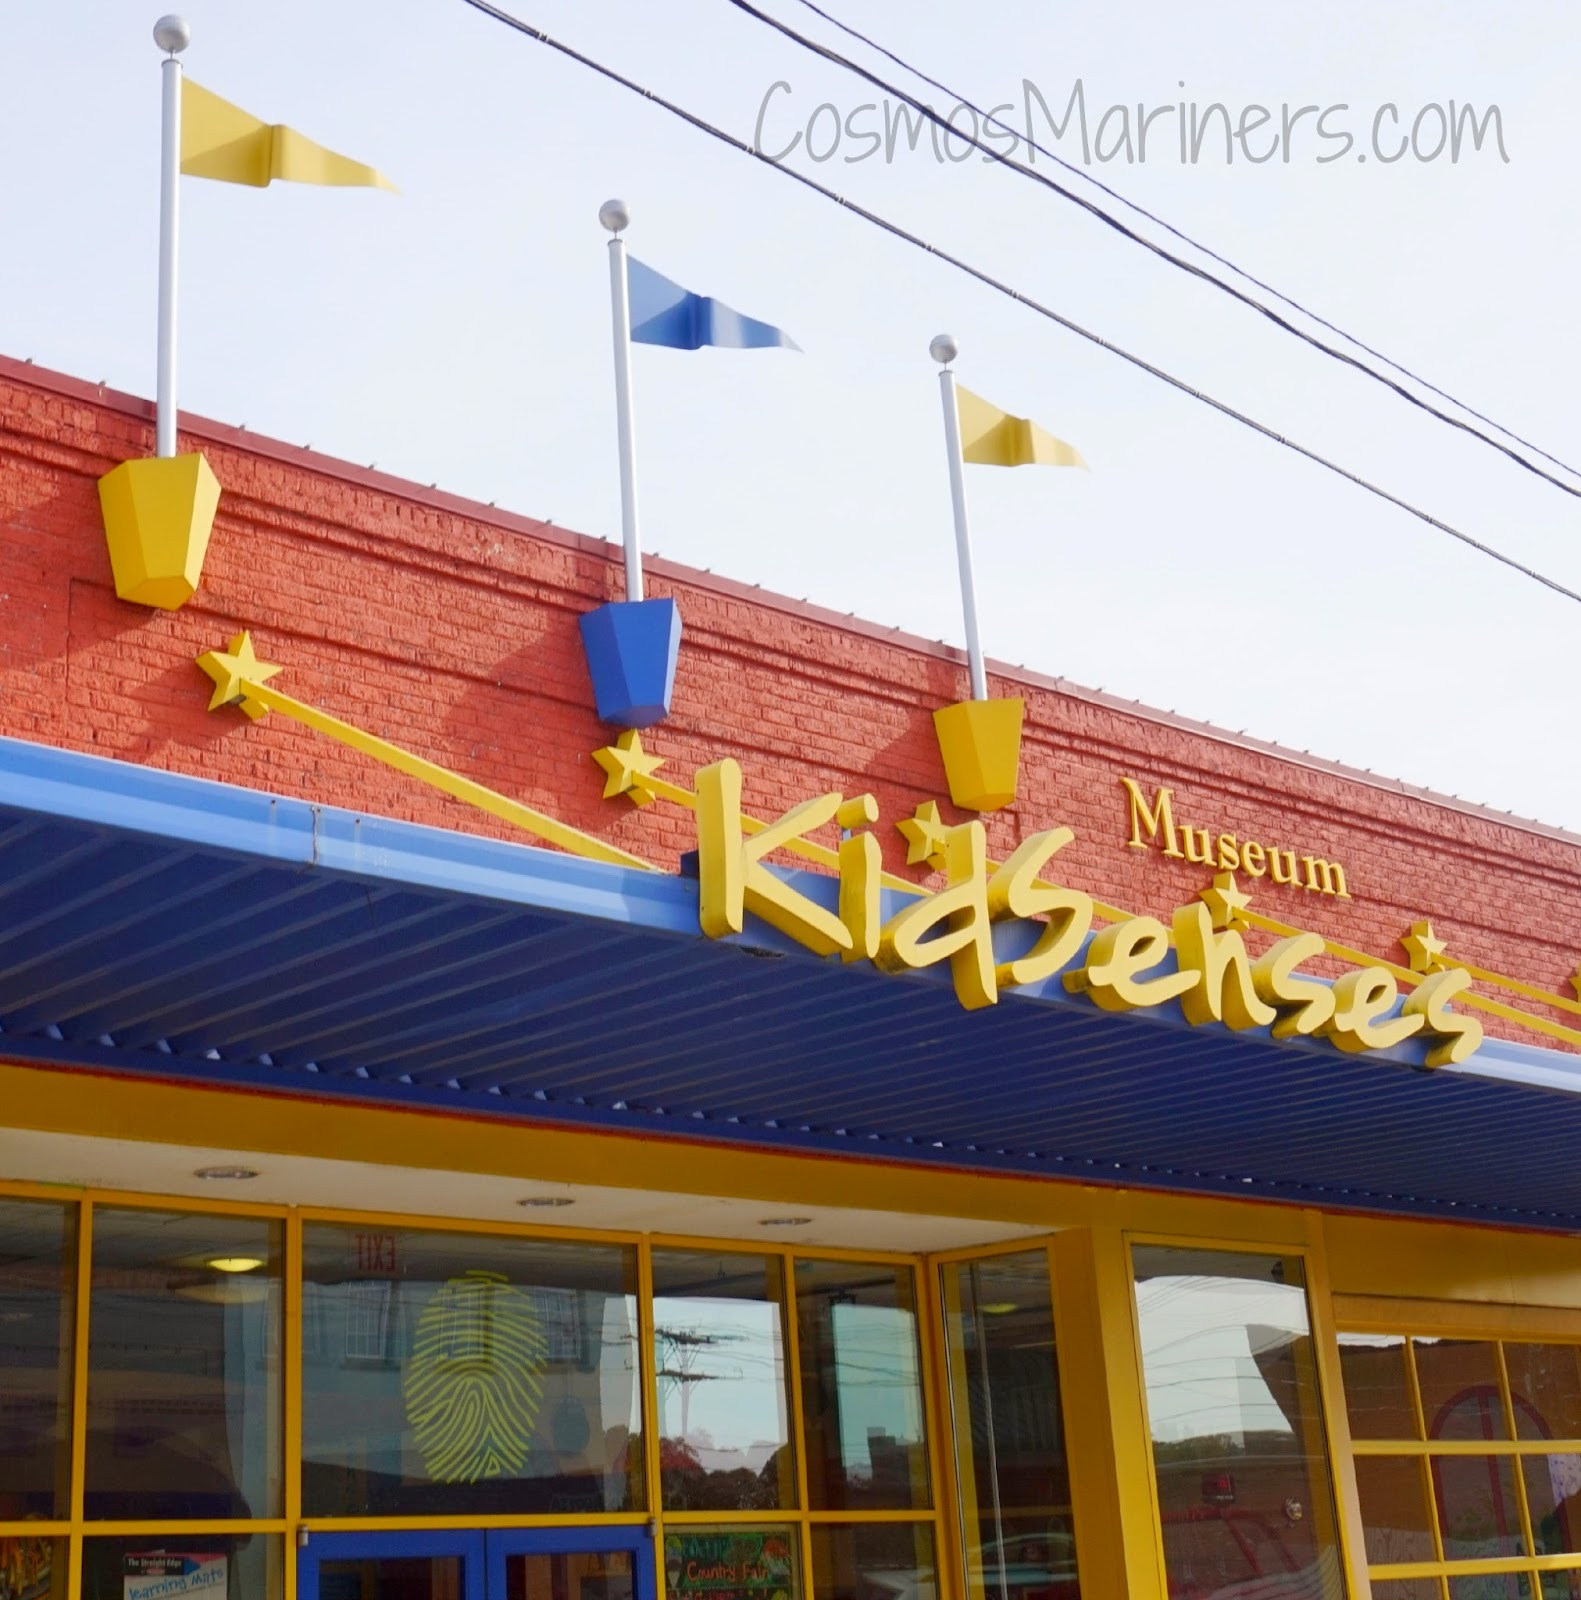 Kid Senses Museum, Rutherfordton, North Carolina | CosmosMariners.com